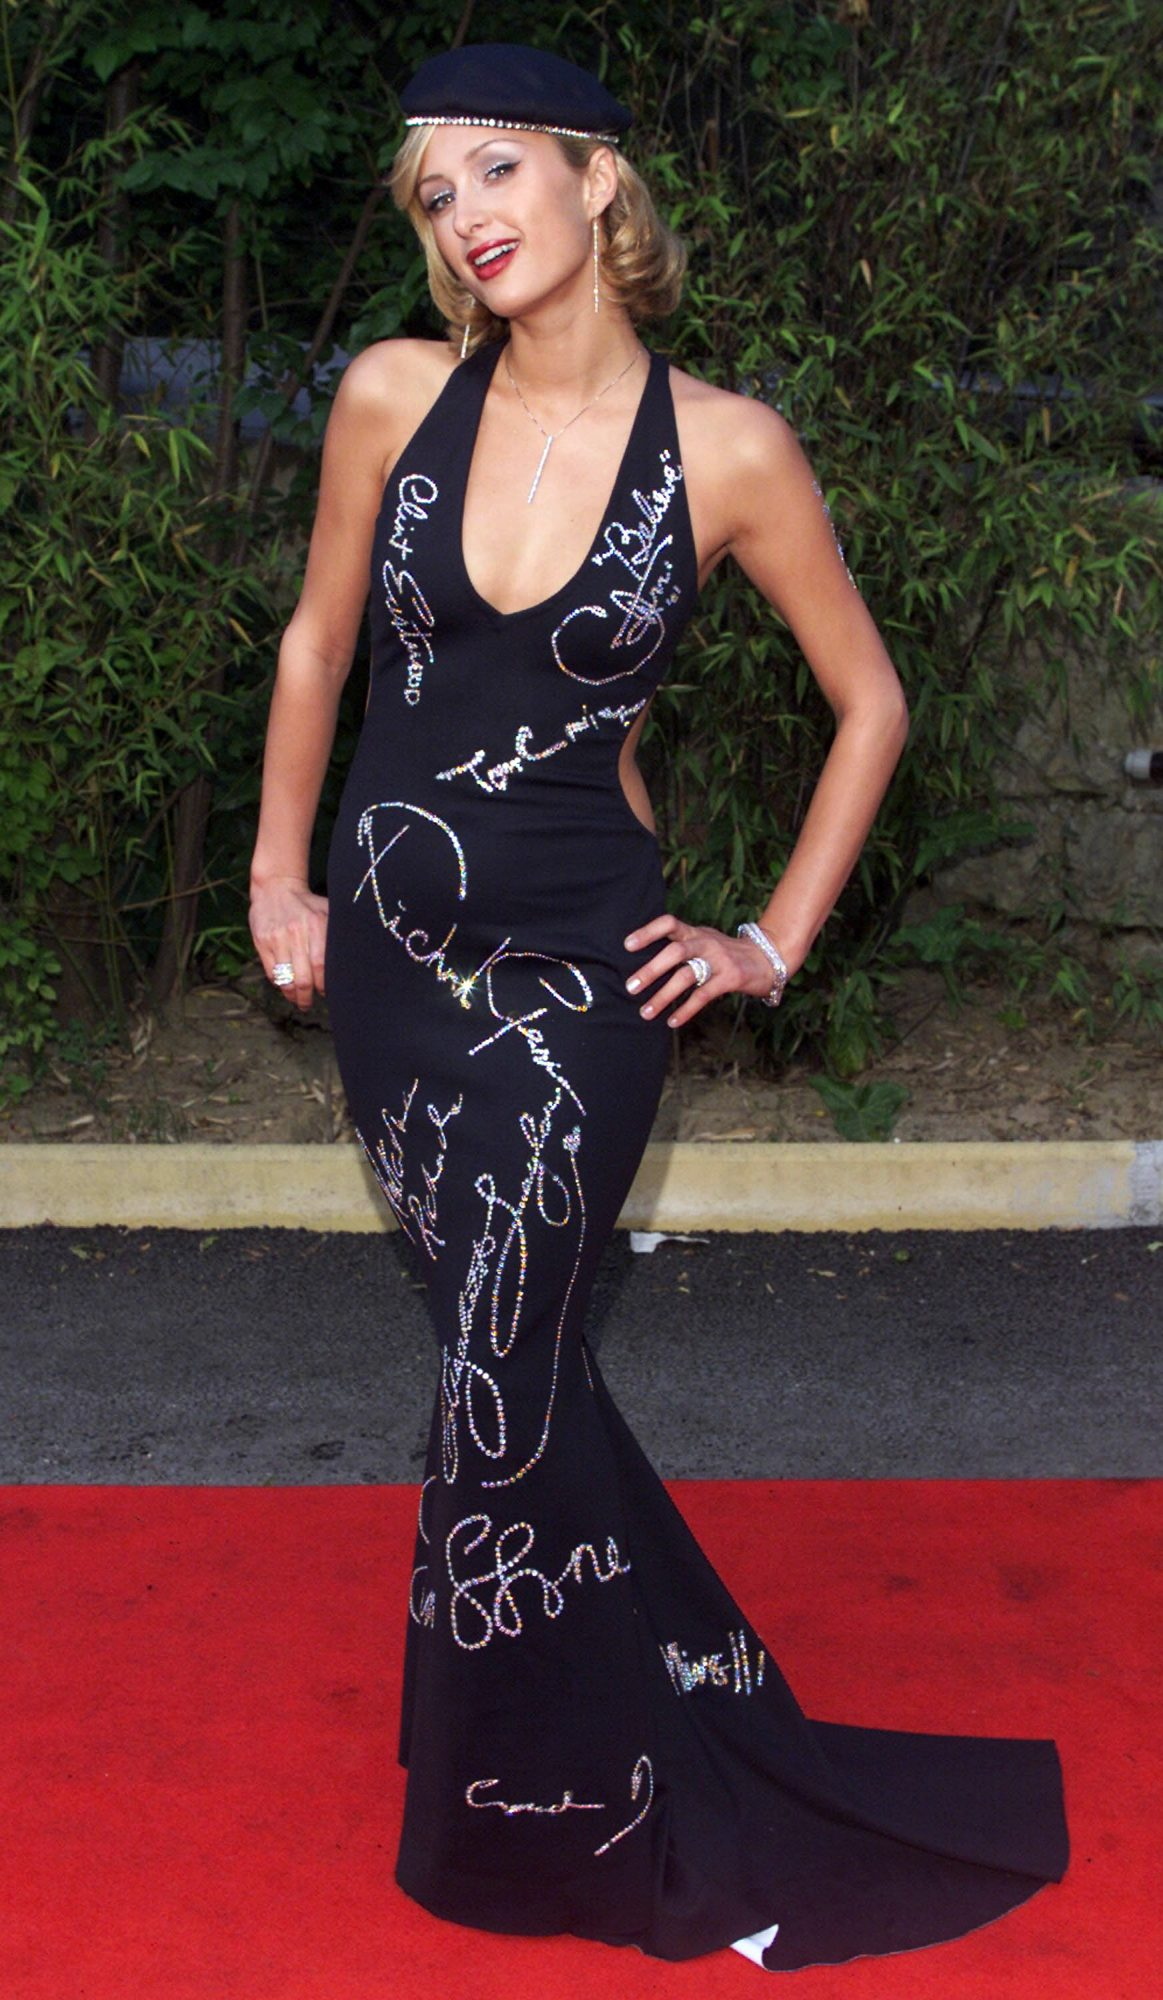 <p>Paris Hilton at 2001 AMFAR Dinner in Cannes</p>